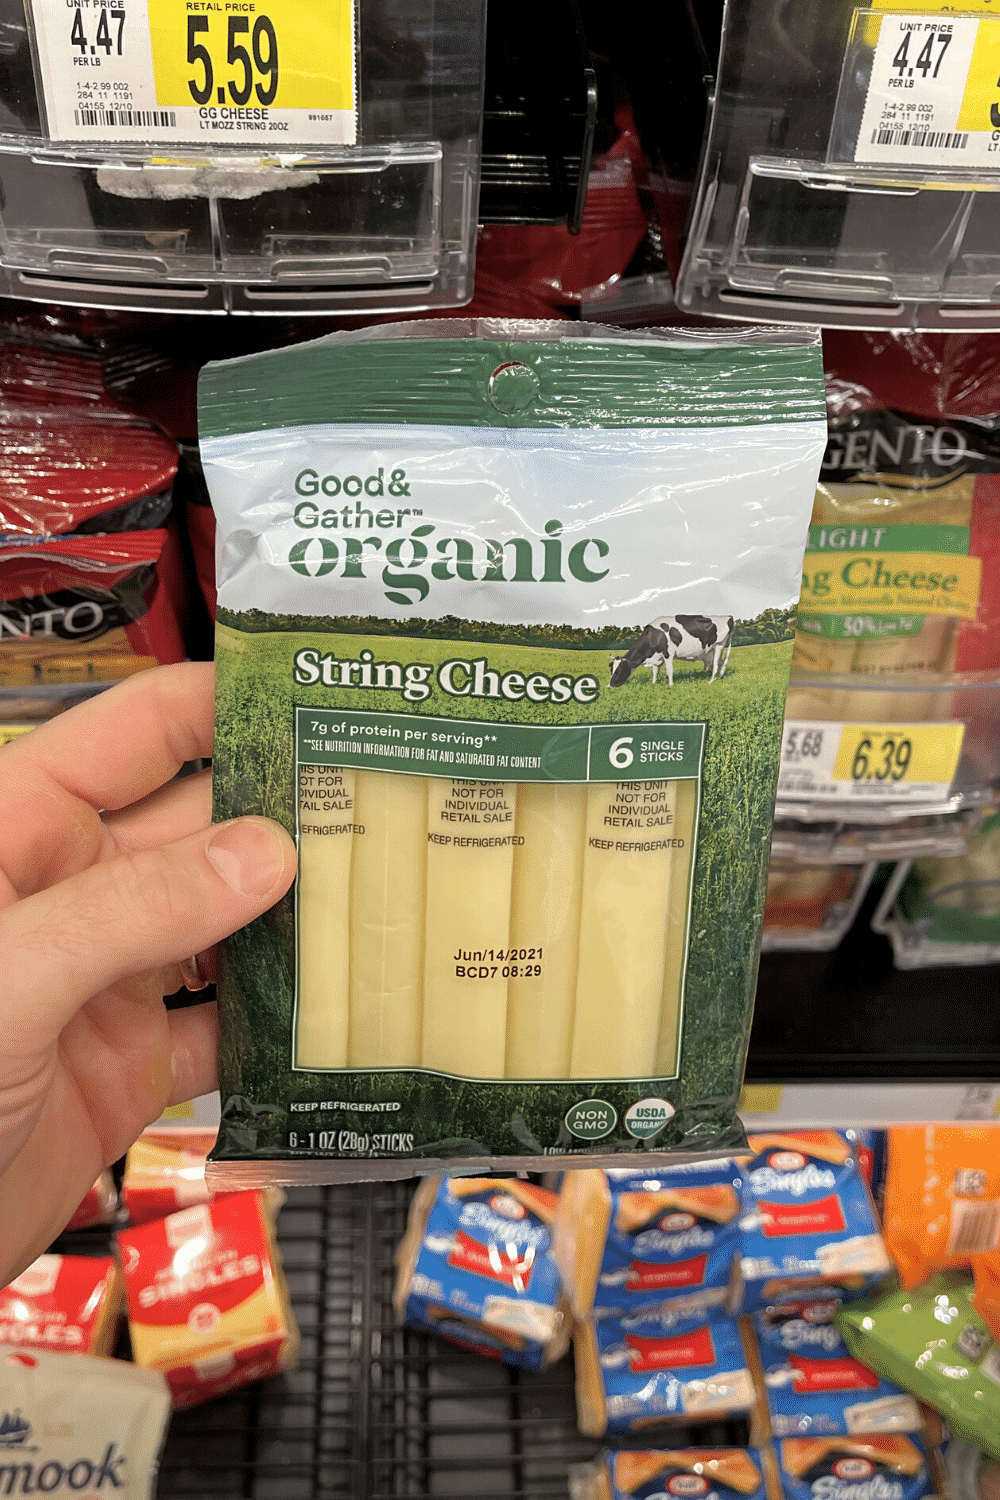 A hand holding a package of string cheese sticks.